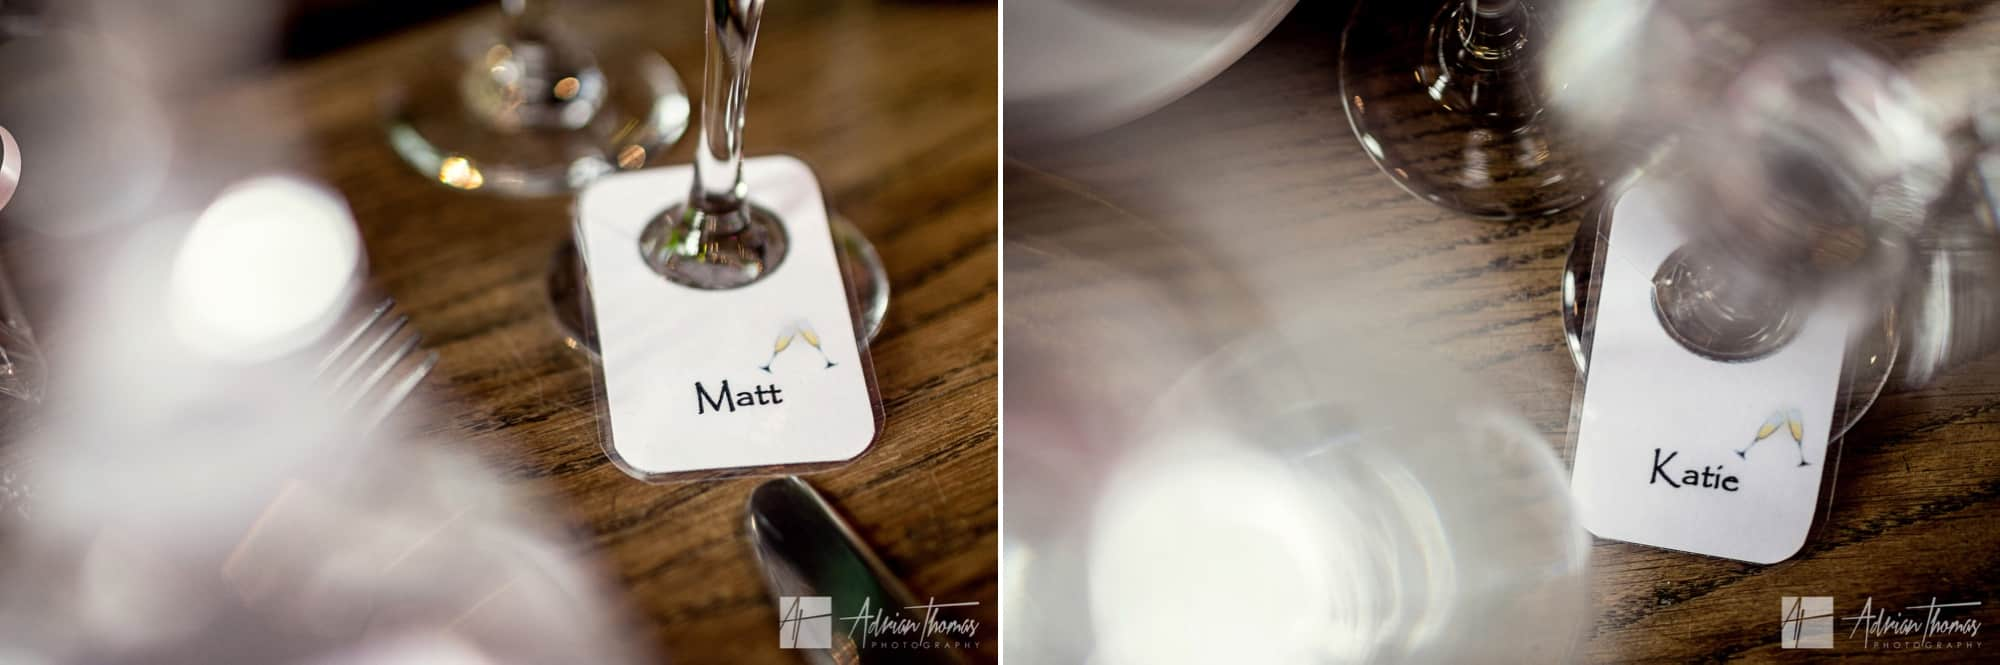 wedding table name tags.